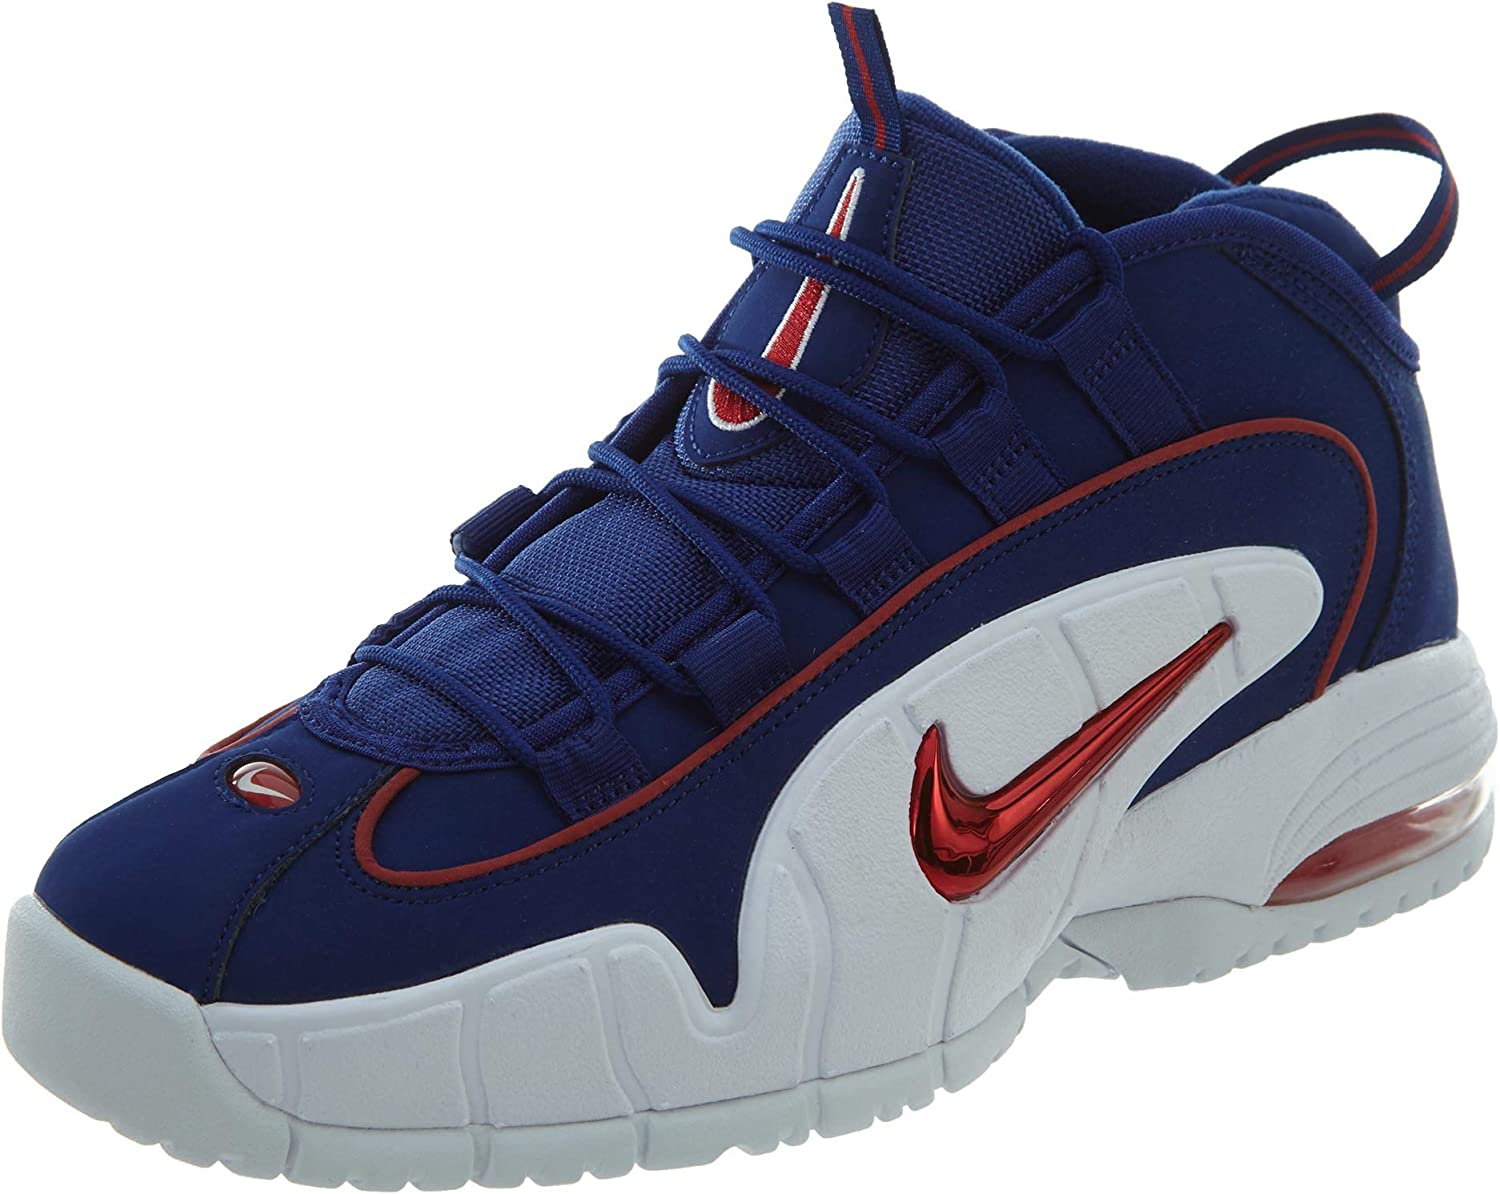 Nike Men's Air Max Penny Red and Blue Leather Sneaker 44(EU) 10(US) Multicolour